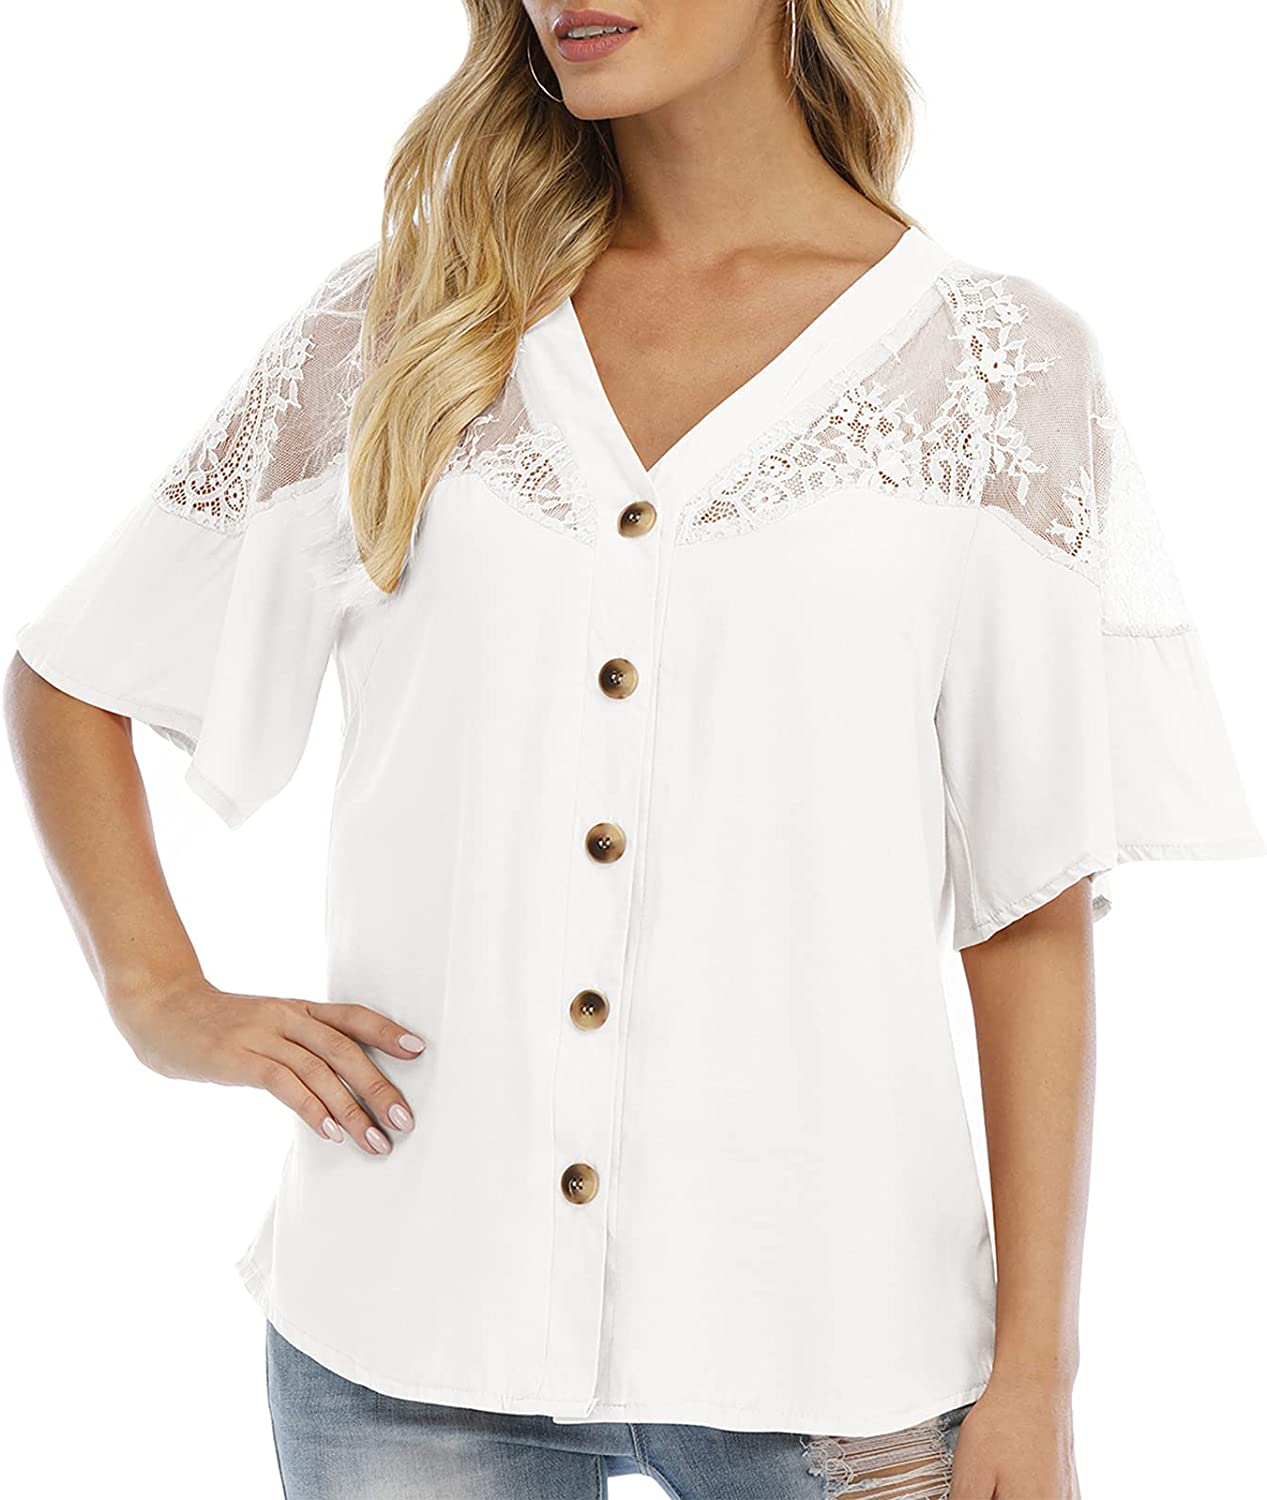 Anbenser Womens Button Down Blouse V Neck Short Sleeve Loose Top Lace Shirts